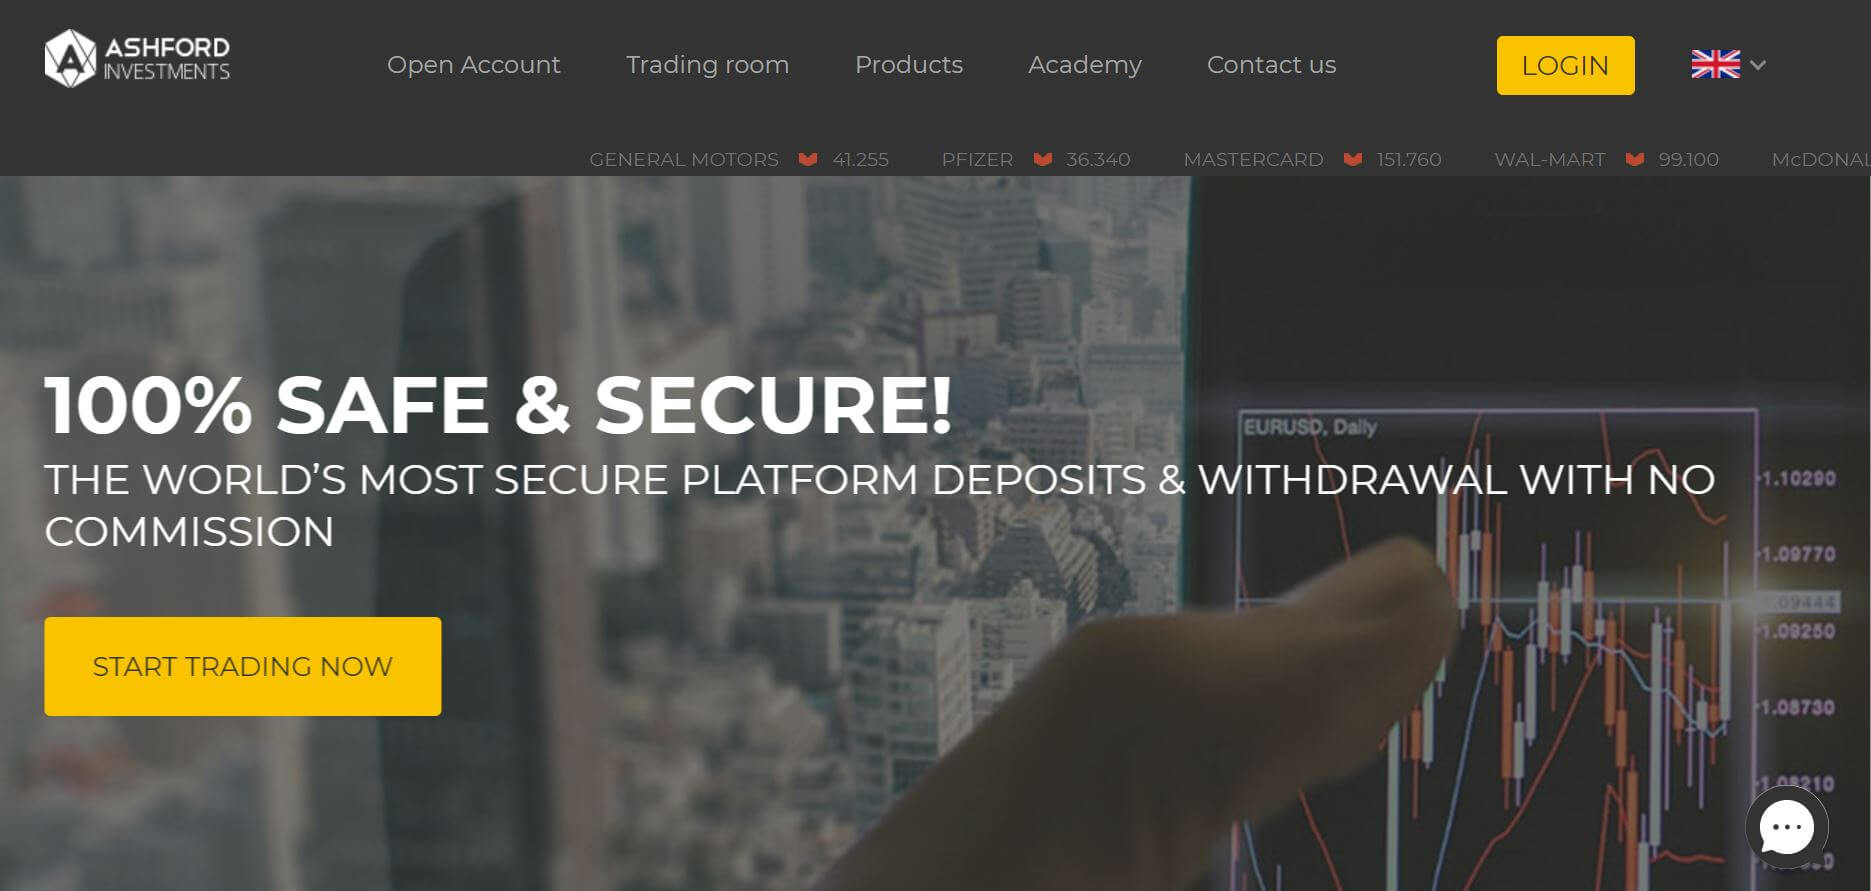 Ashford Investments Website